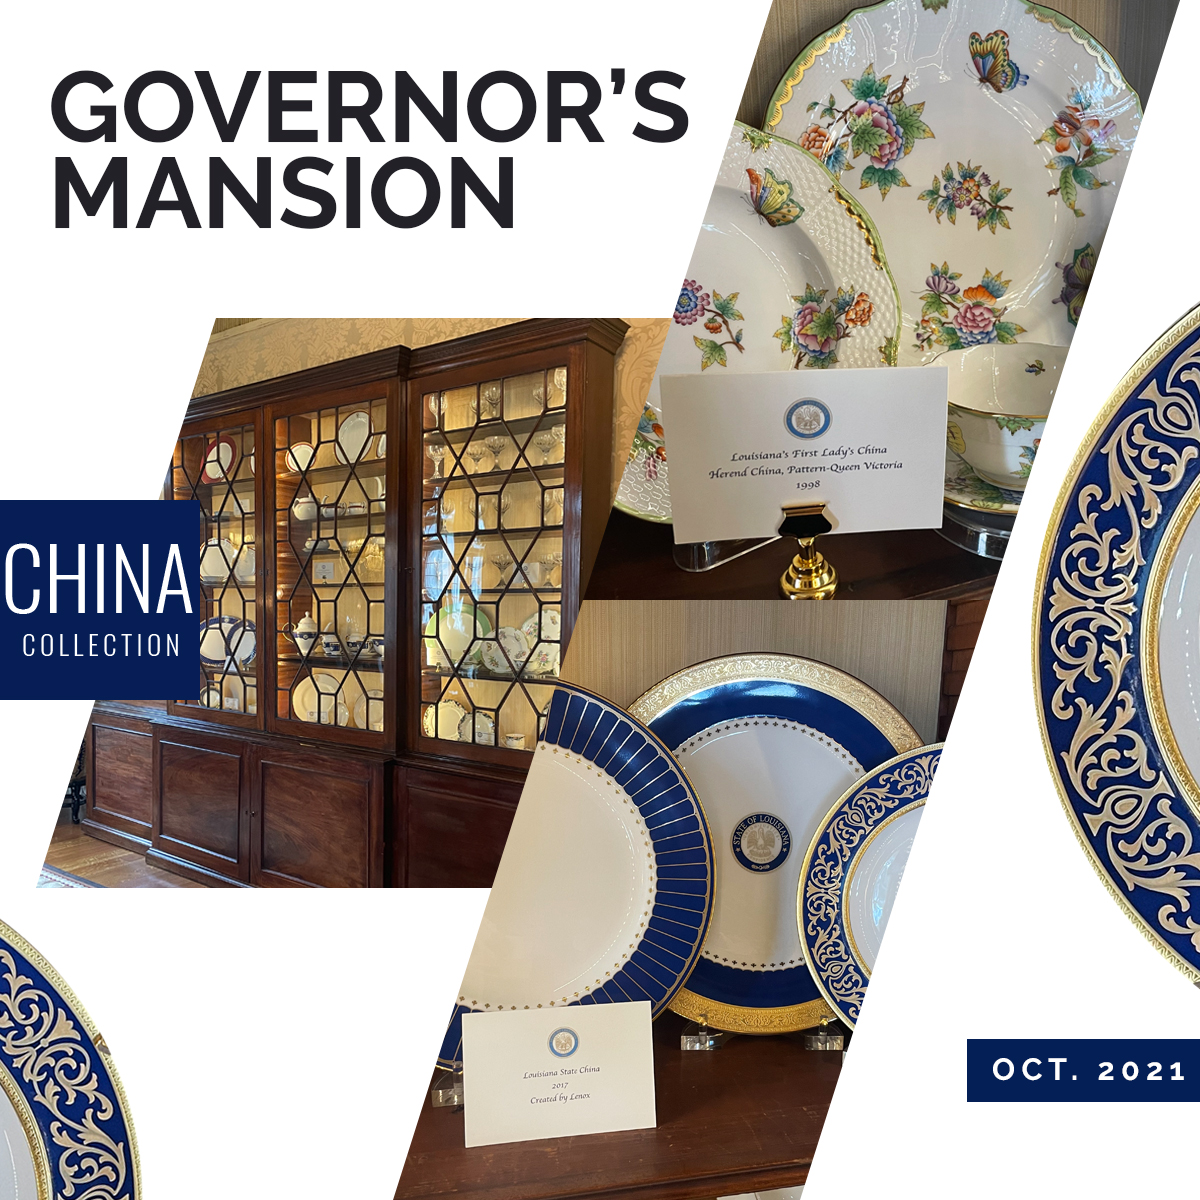 The Governor's Mansion: China